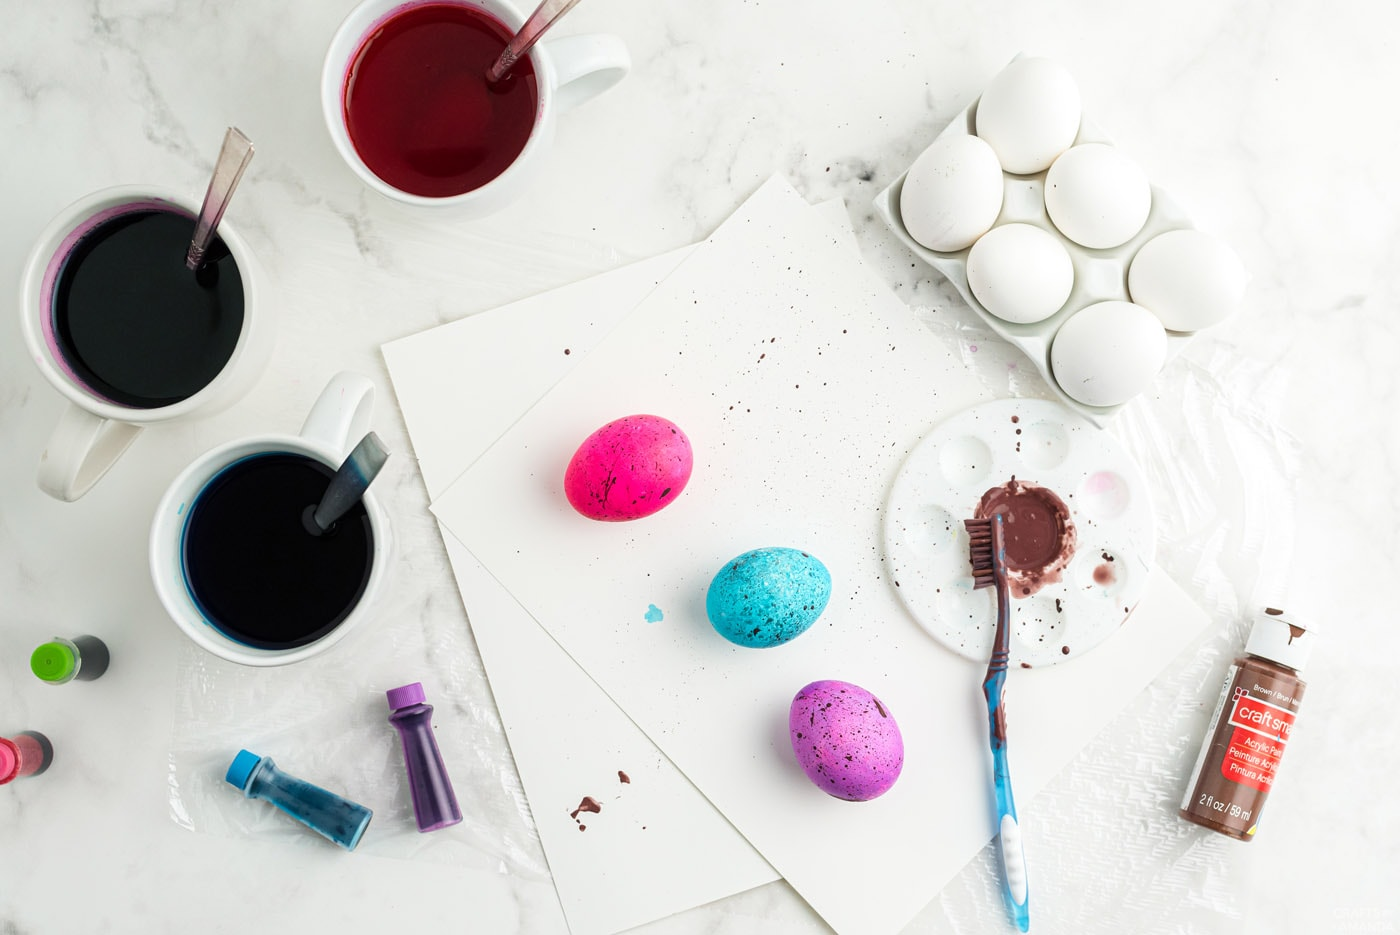 using a toothbrush to flick paint onto colored eggs